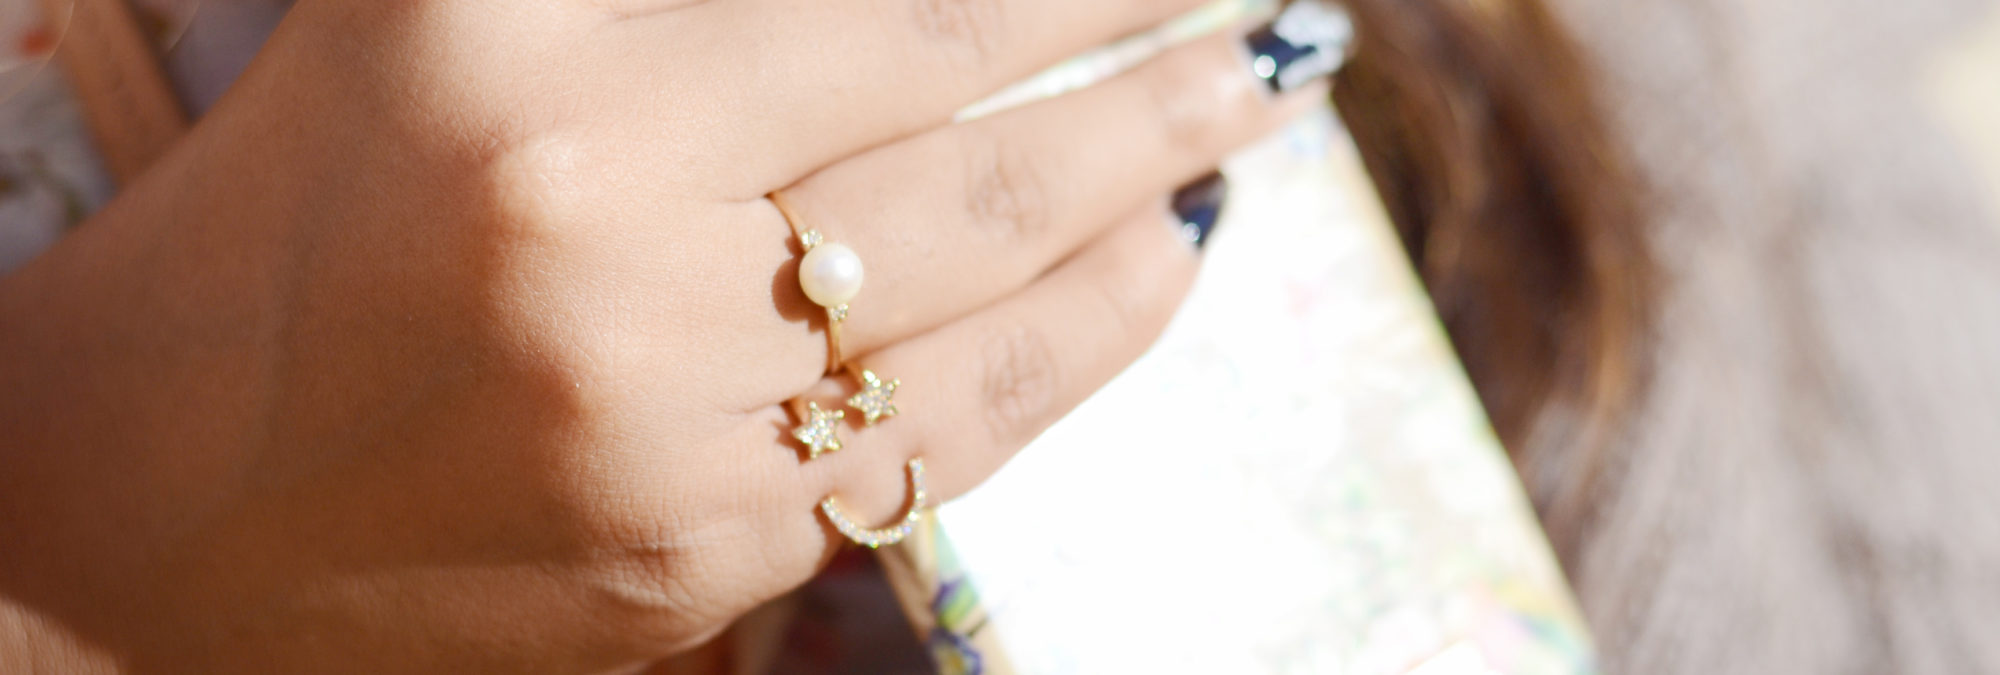 2 Jewelry Brands to Know and Love: Maison Miru and Experimental Jewellery Club